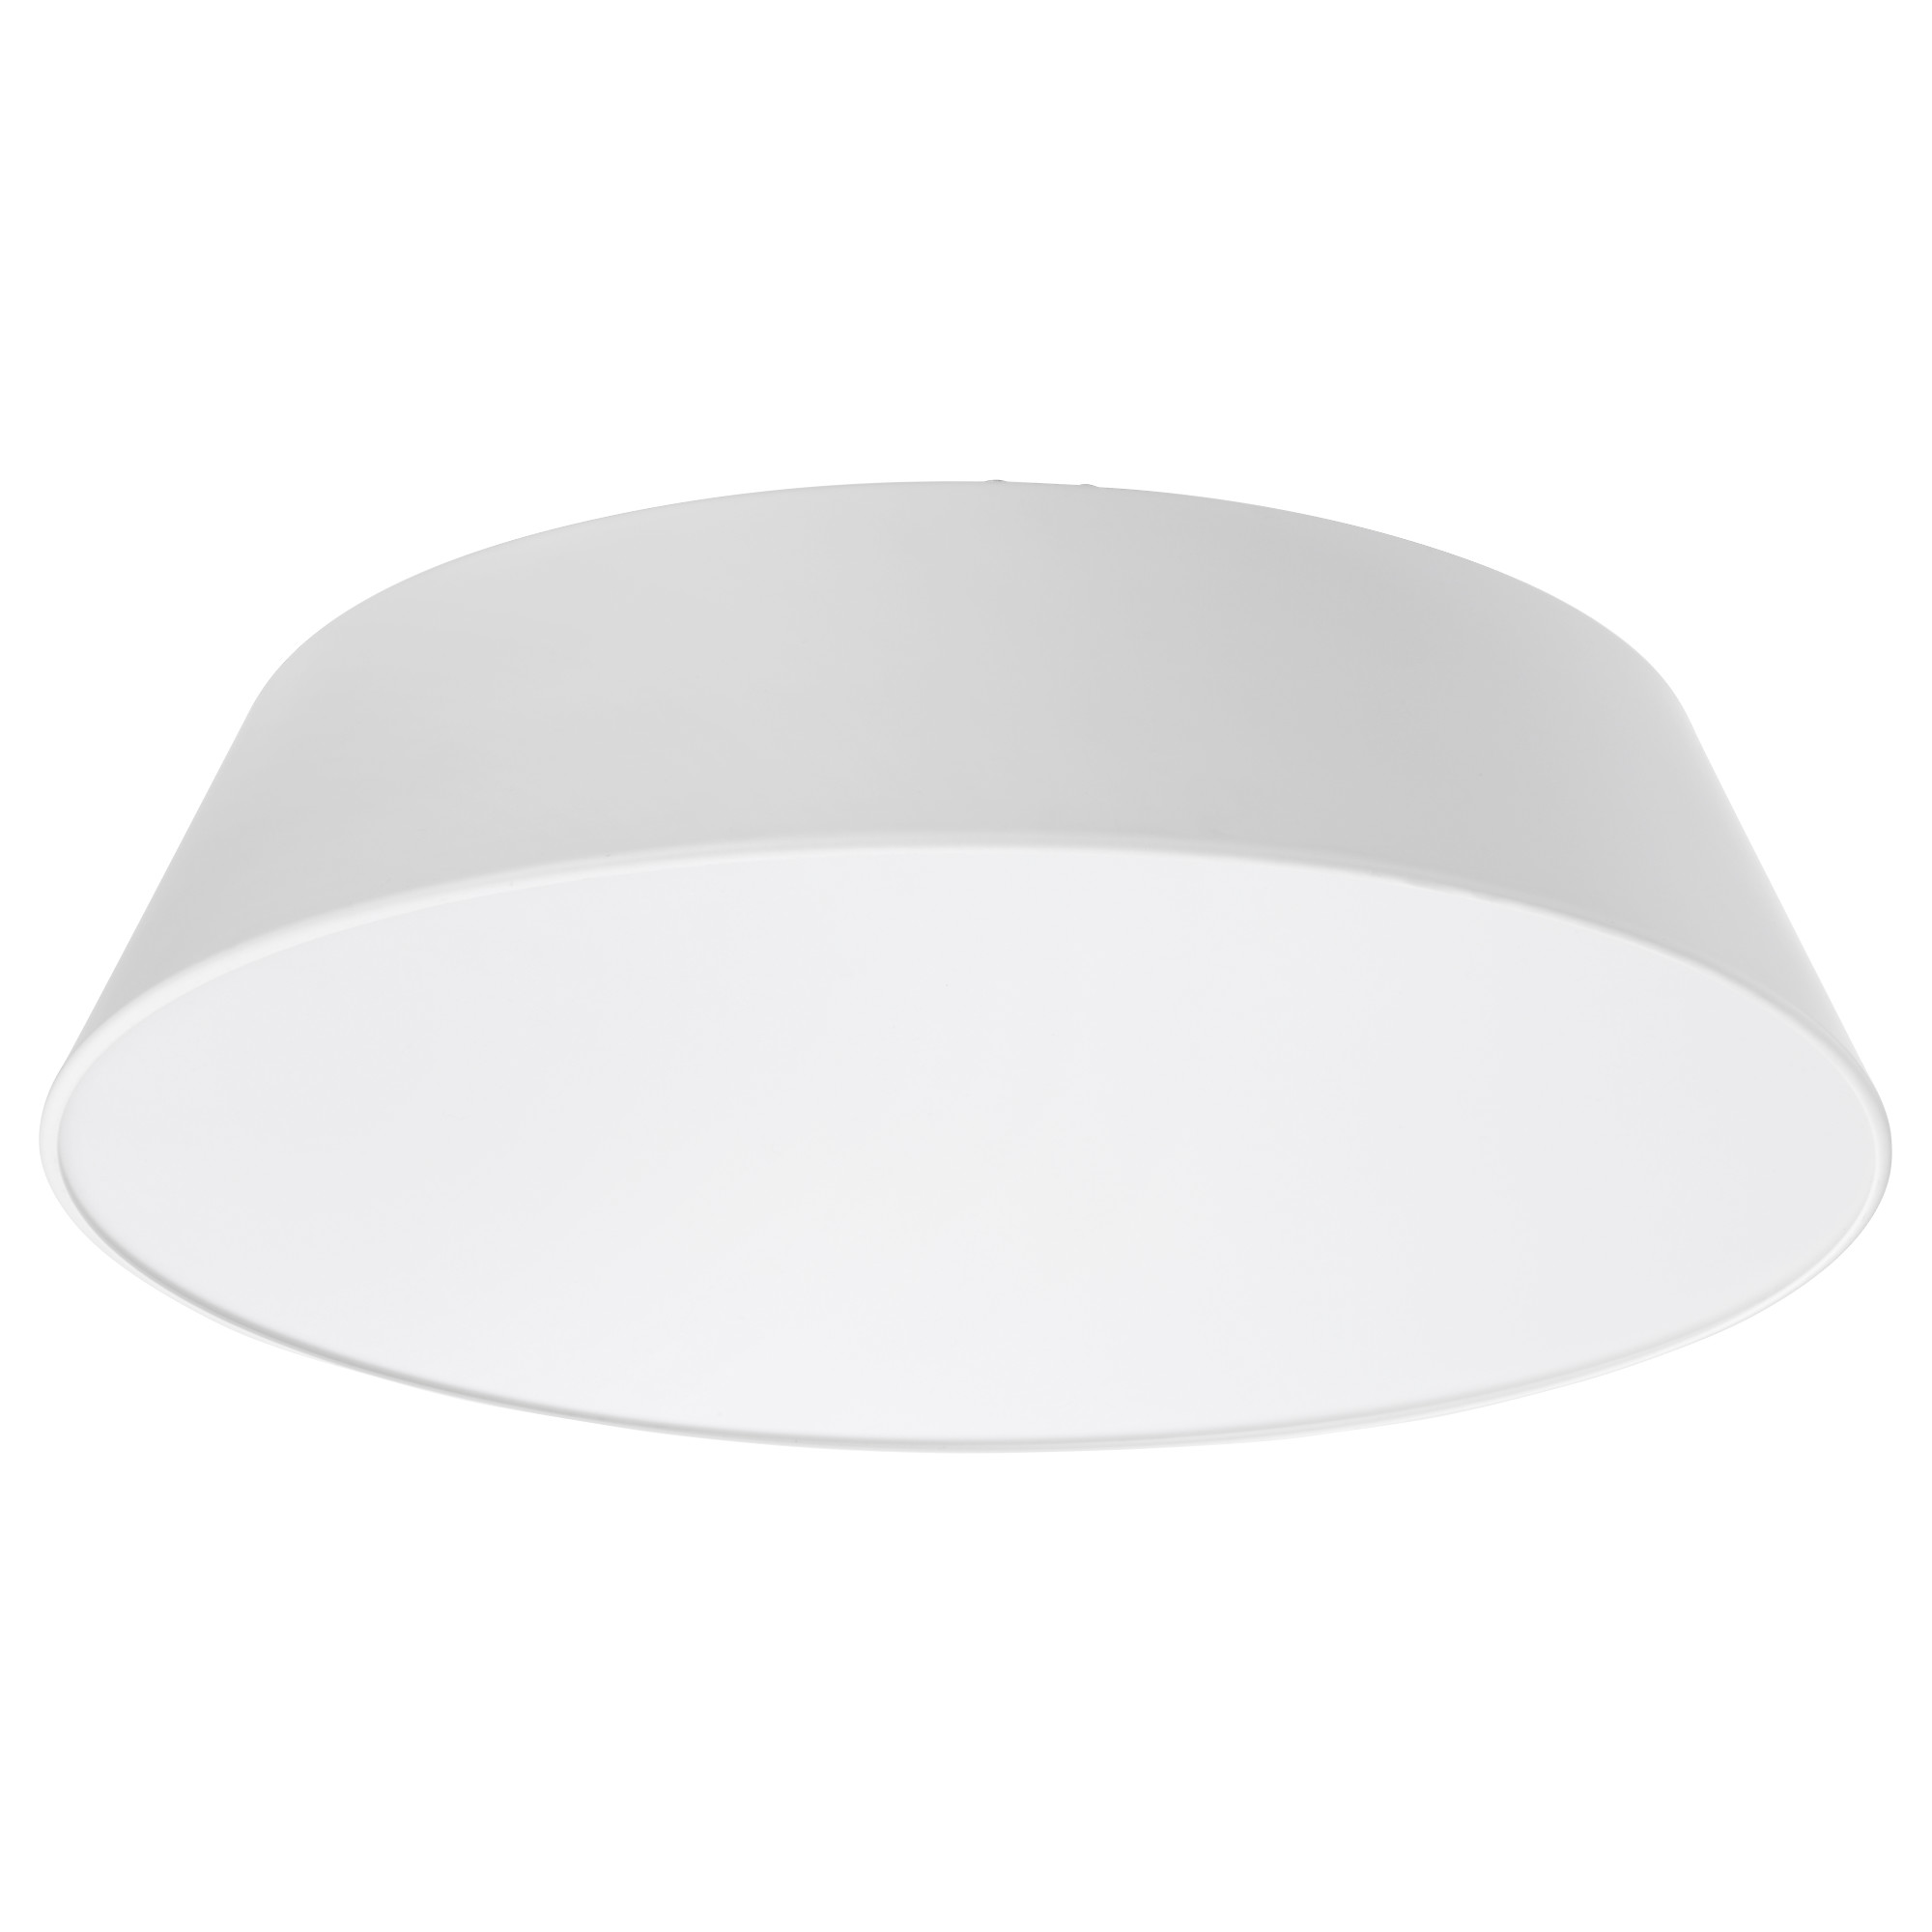 ceiling lamp inter ikea systems b.v. 2011 - 2016 | privacy policy. UFRRXNV